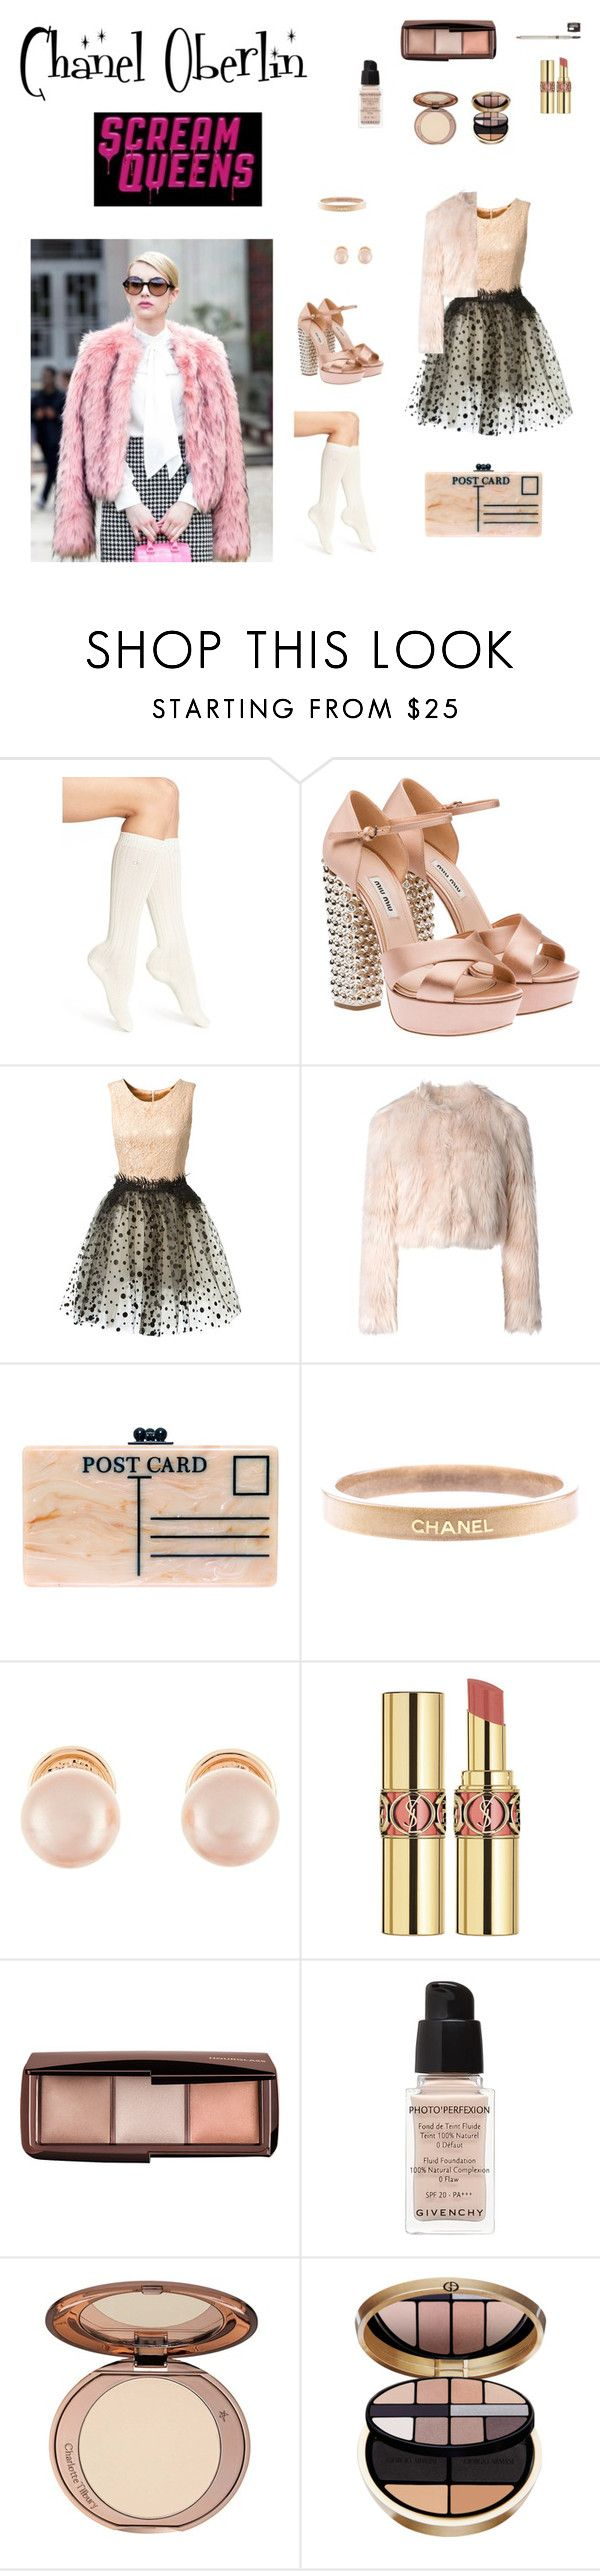 """Chanel Oberlin Scream Queens Inspired x"" by x-martilovesfashionx ❤ liked on Polyvore featuring mode, Calvin Klein, Miu Miu, Loyd/Ford, RED Valentino, Edie Parker, Chanel, Kenneth Jay Lane, Yves Saint Laurent et Hourglass Cosmetics"